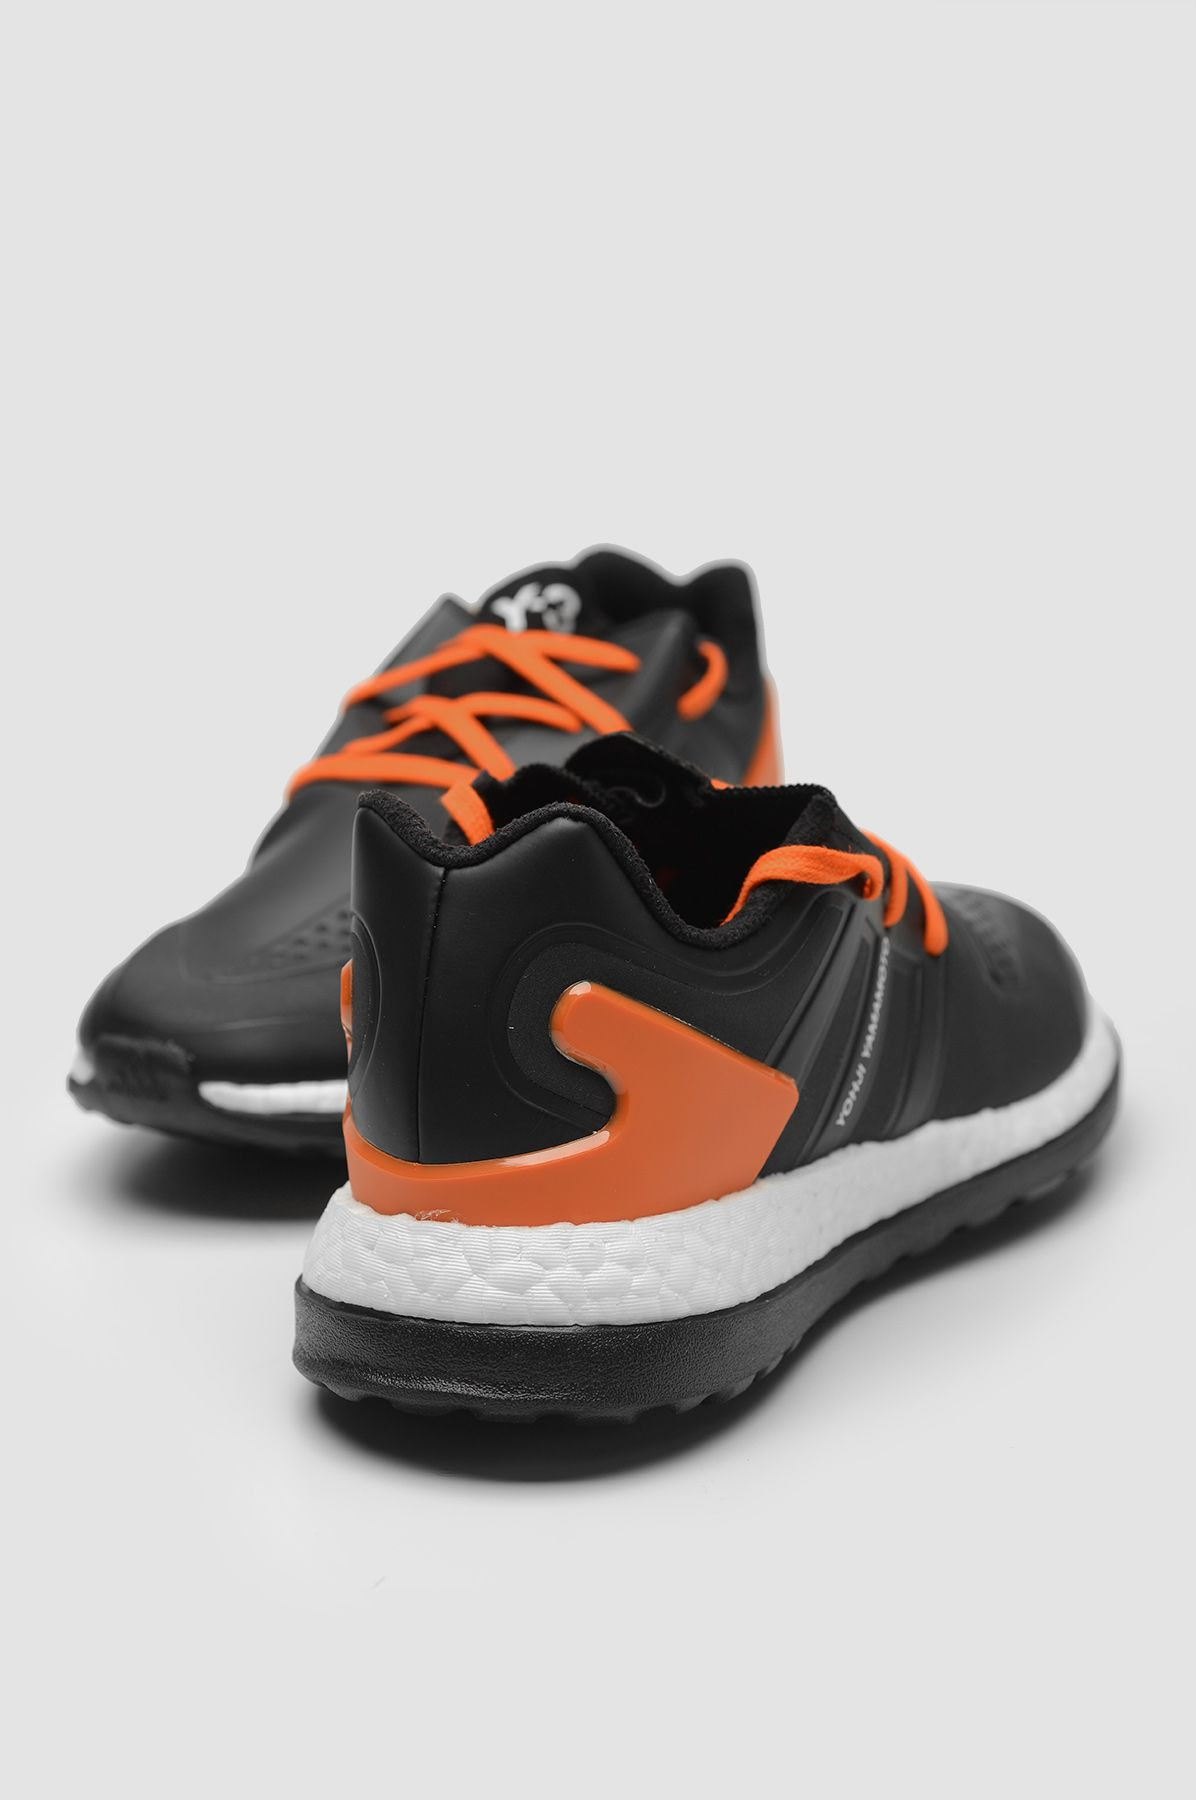 y3-pure-boost-zg-black-orange-3